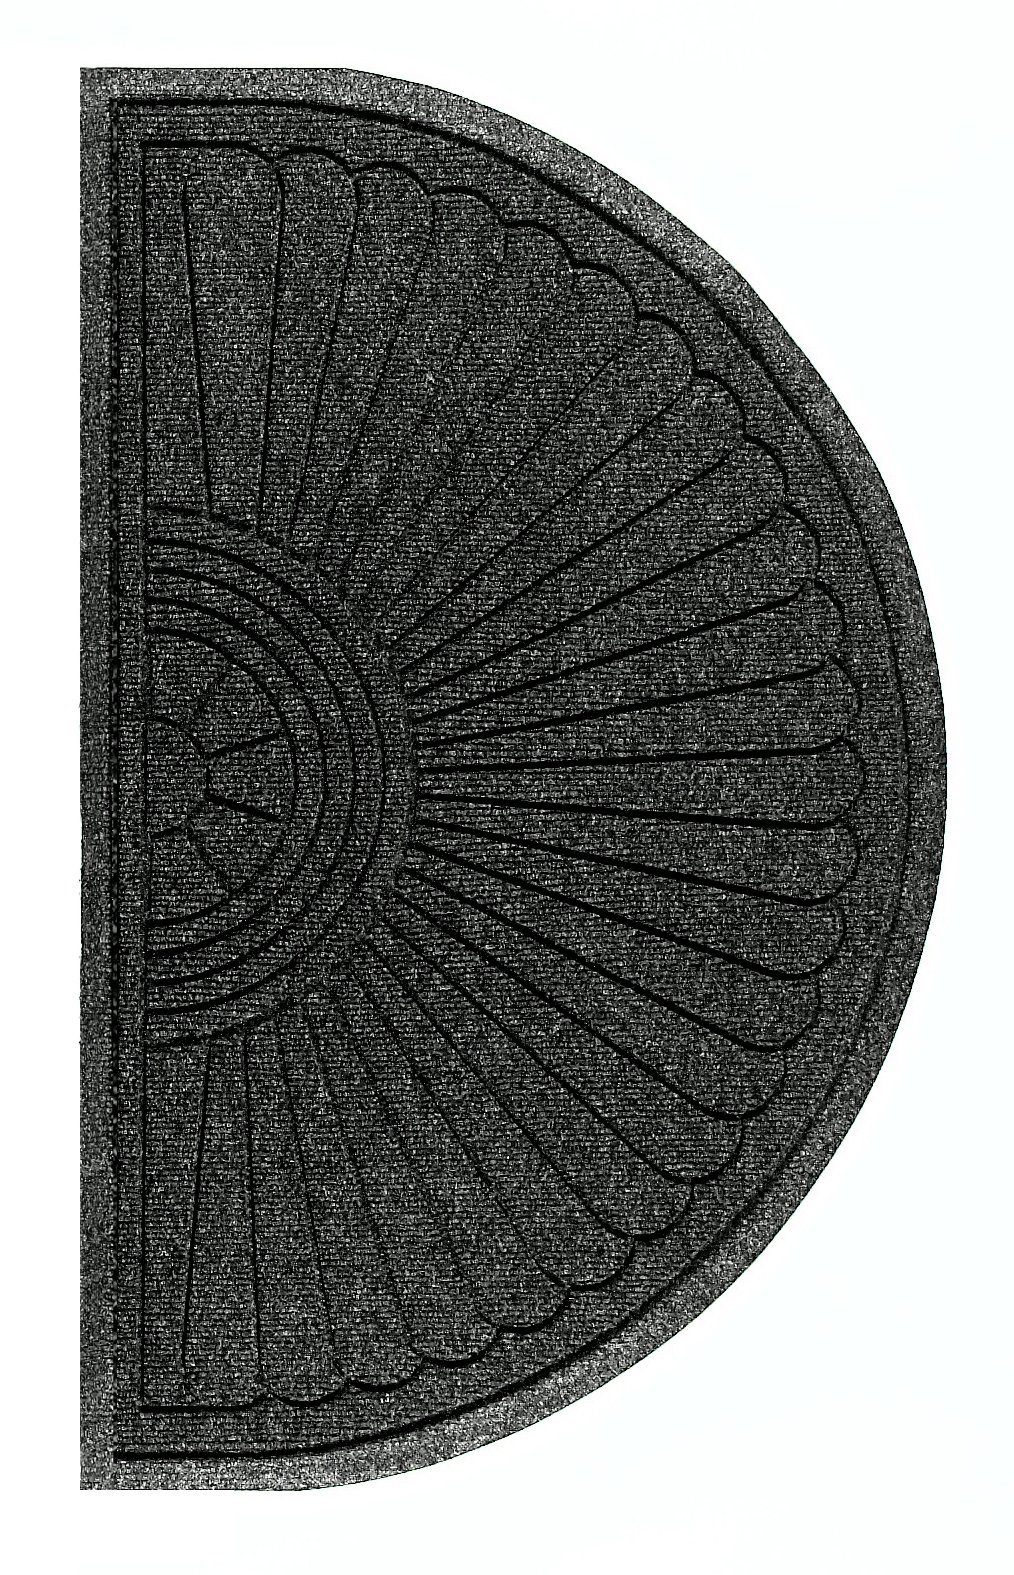 M+A Matting 2246 Waterhog Eco Grand Premier PET Polyester Fiber Half Oval Entrance Indoor/Outdoor Floor Mat, SBR Rubber Backing, 3.3' Length x 6' Width, 3/8'' Thick, Black Smoke